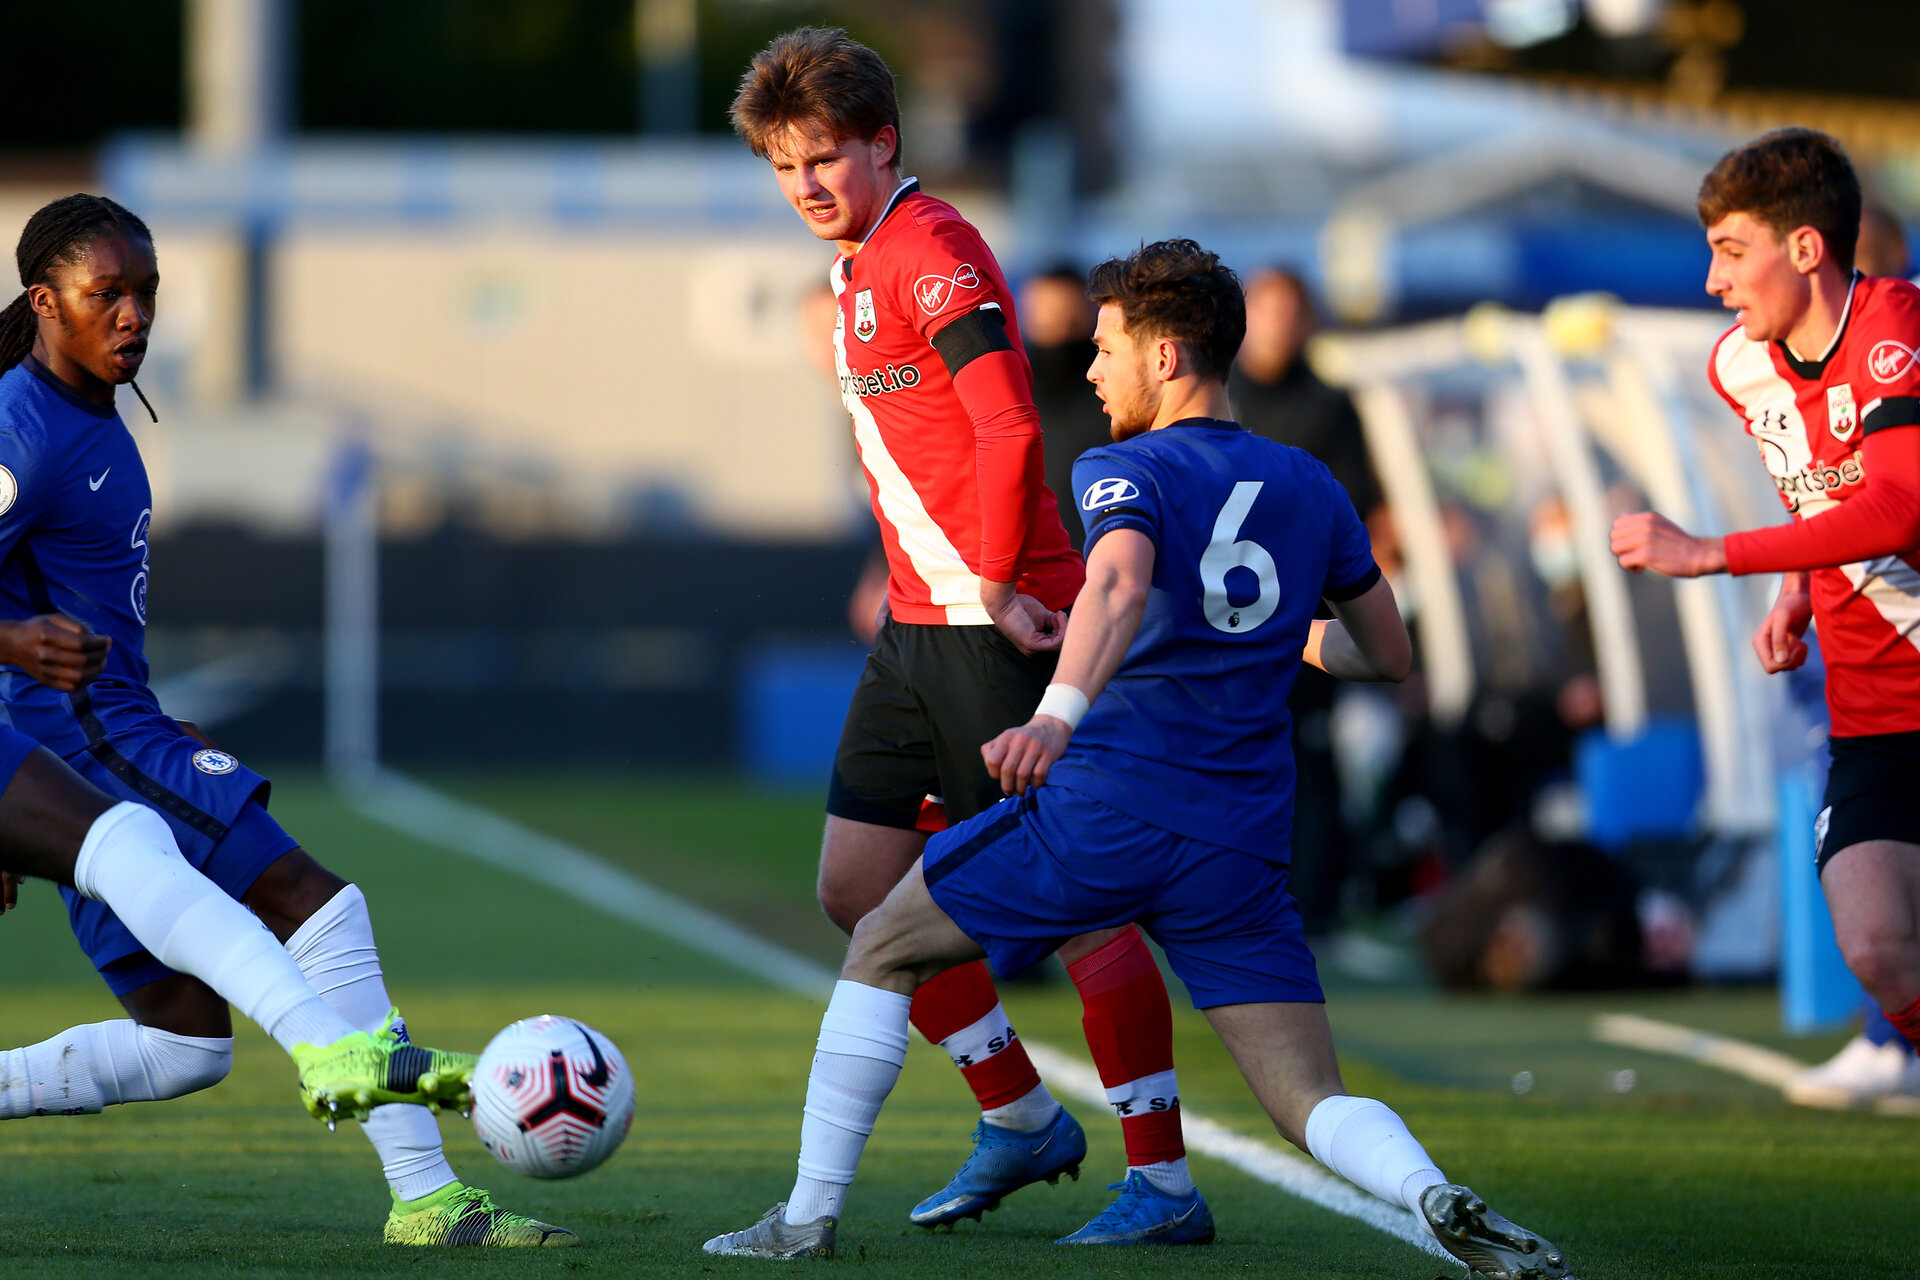 KINGSTON UPON THAMES, LONDON, ENGLAND - APRIL 12:  during the Premier League 2 match between U23 Chelsea FC and Southampton B Team at the Kingsmeadow Stadium on April 12, 2021 in Kingston upon Thames, London, England.  (Photo by Isabelle Field/Southampton FC via Getty Images)